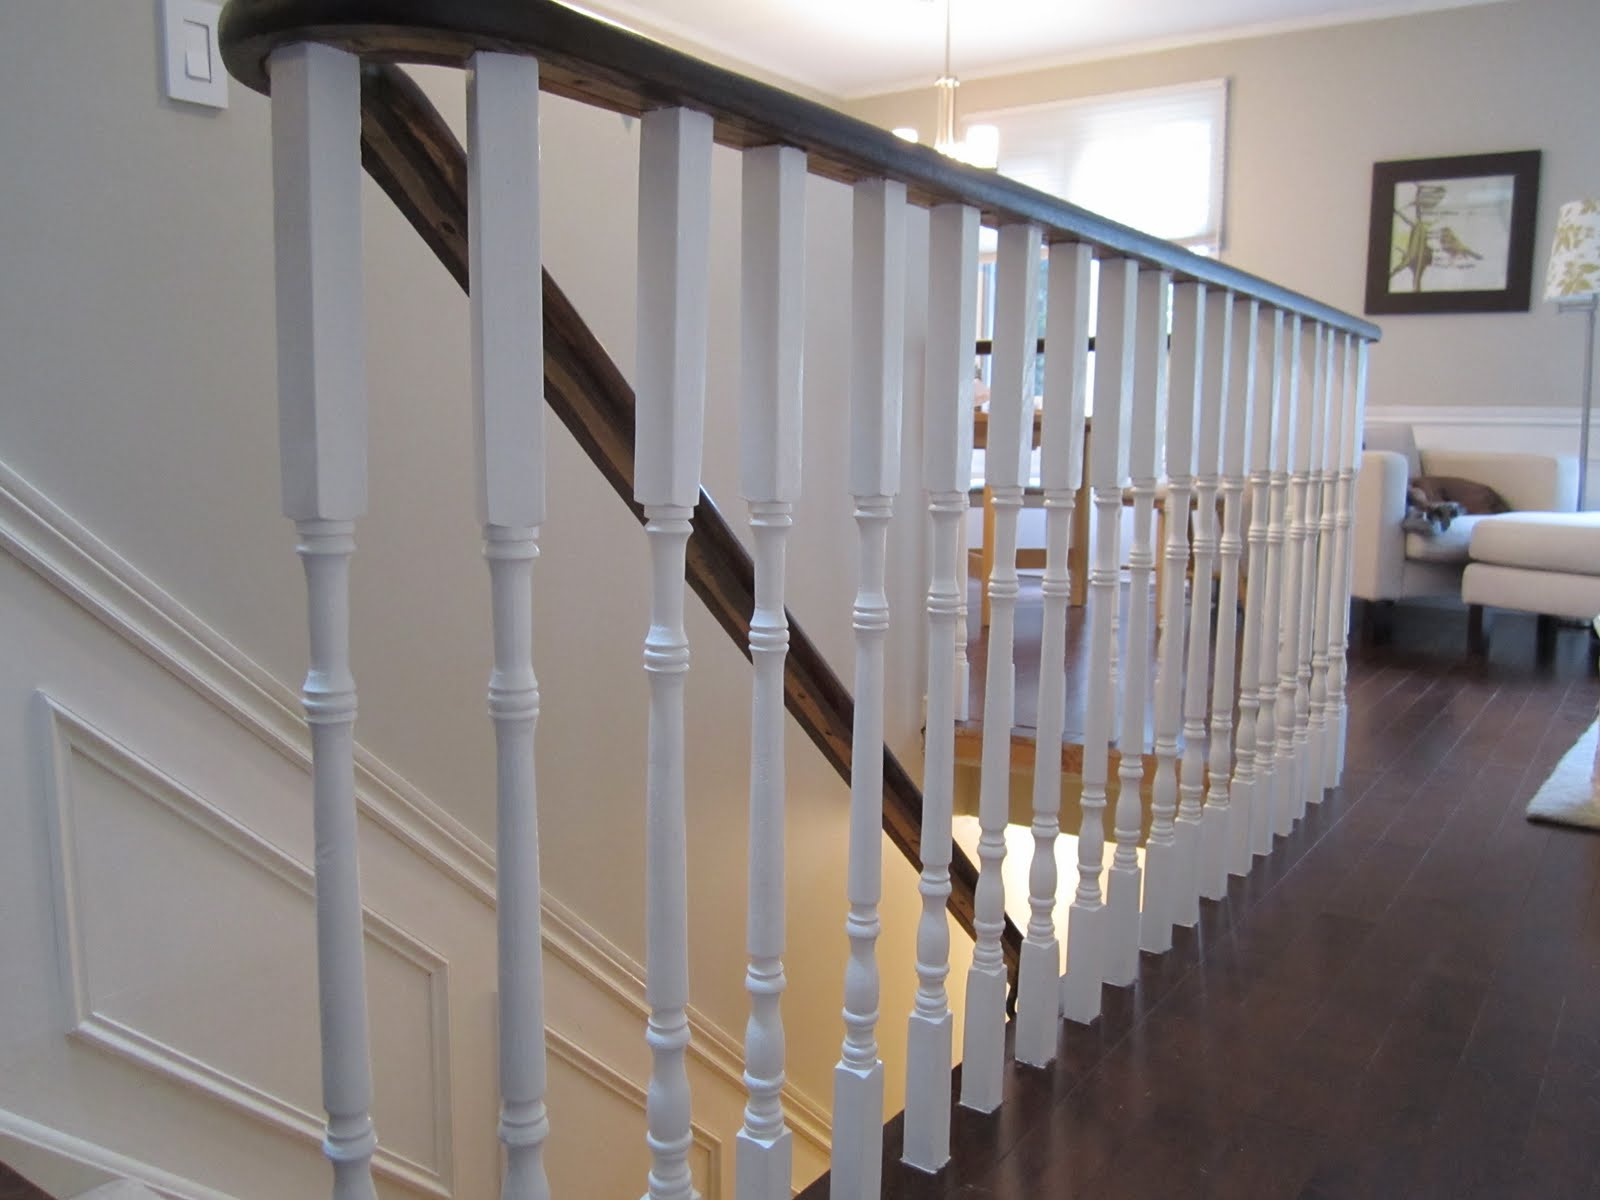 Remodelaholic | Updating an Oak Stair or Handrail to White ...